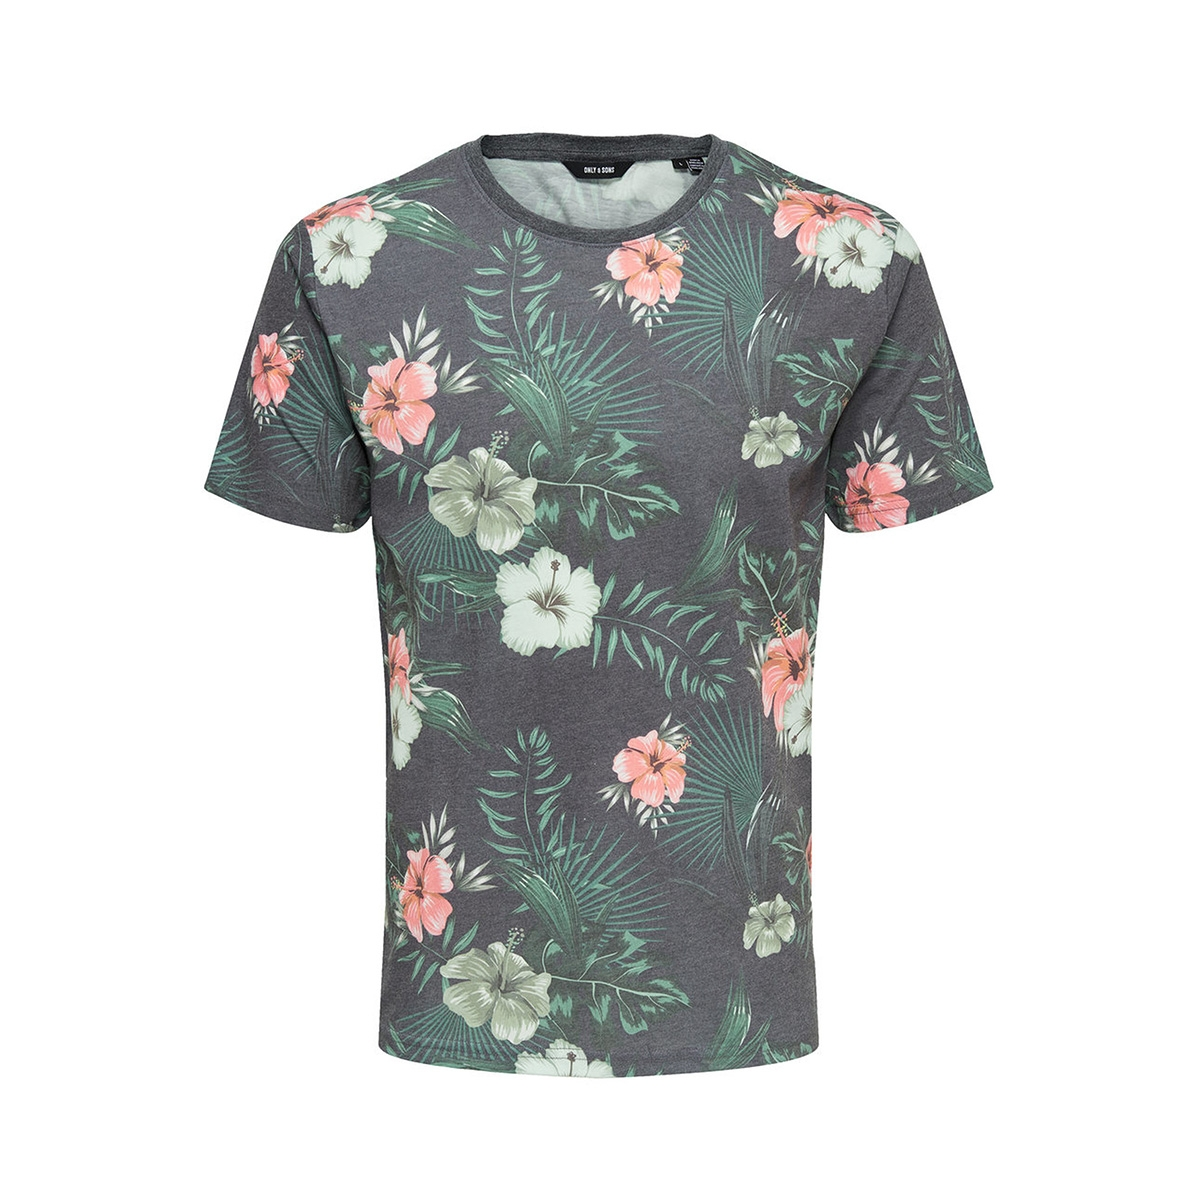 onsflanc tee ss exp 22009777 only & sons t-shirt night sky